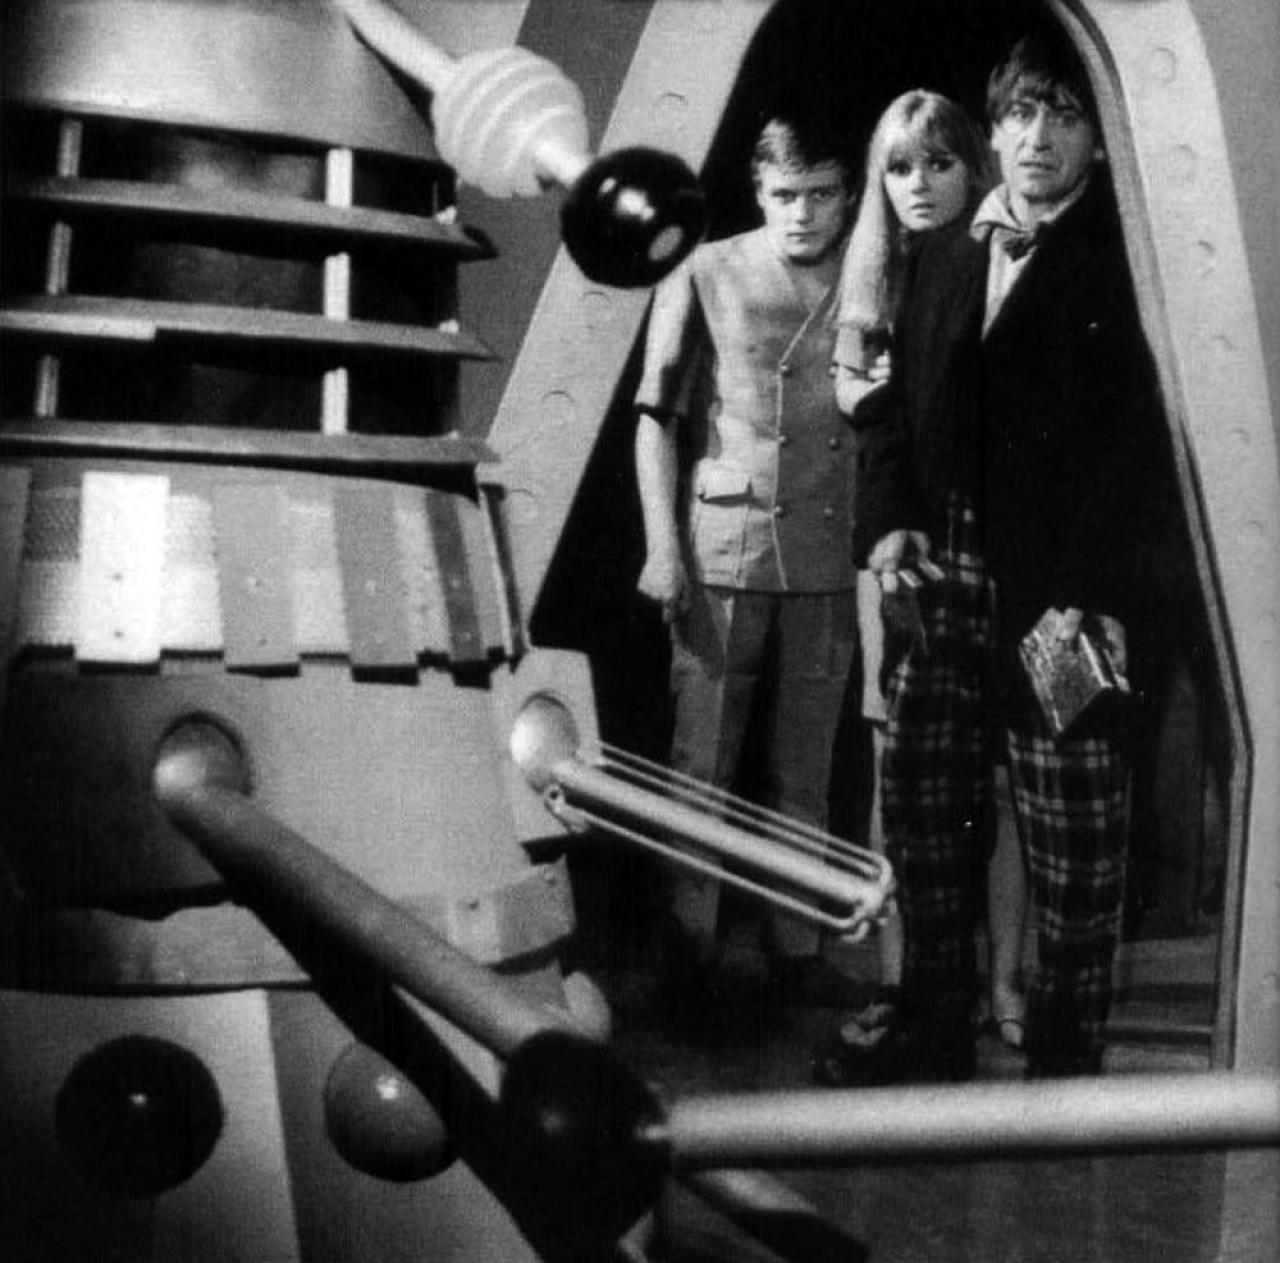 https://i0.wp.com/thedoctorwhocompanion.com/wp-content/uploads/2016/08/Power-of-the-Daleks-2nd-Second-Patrick-Troughton.jpg